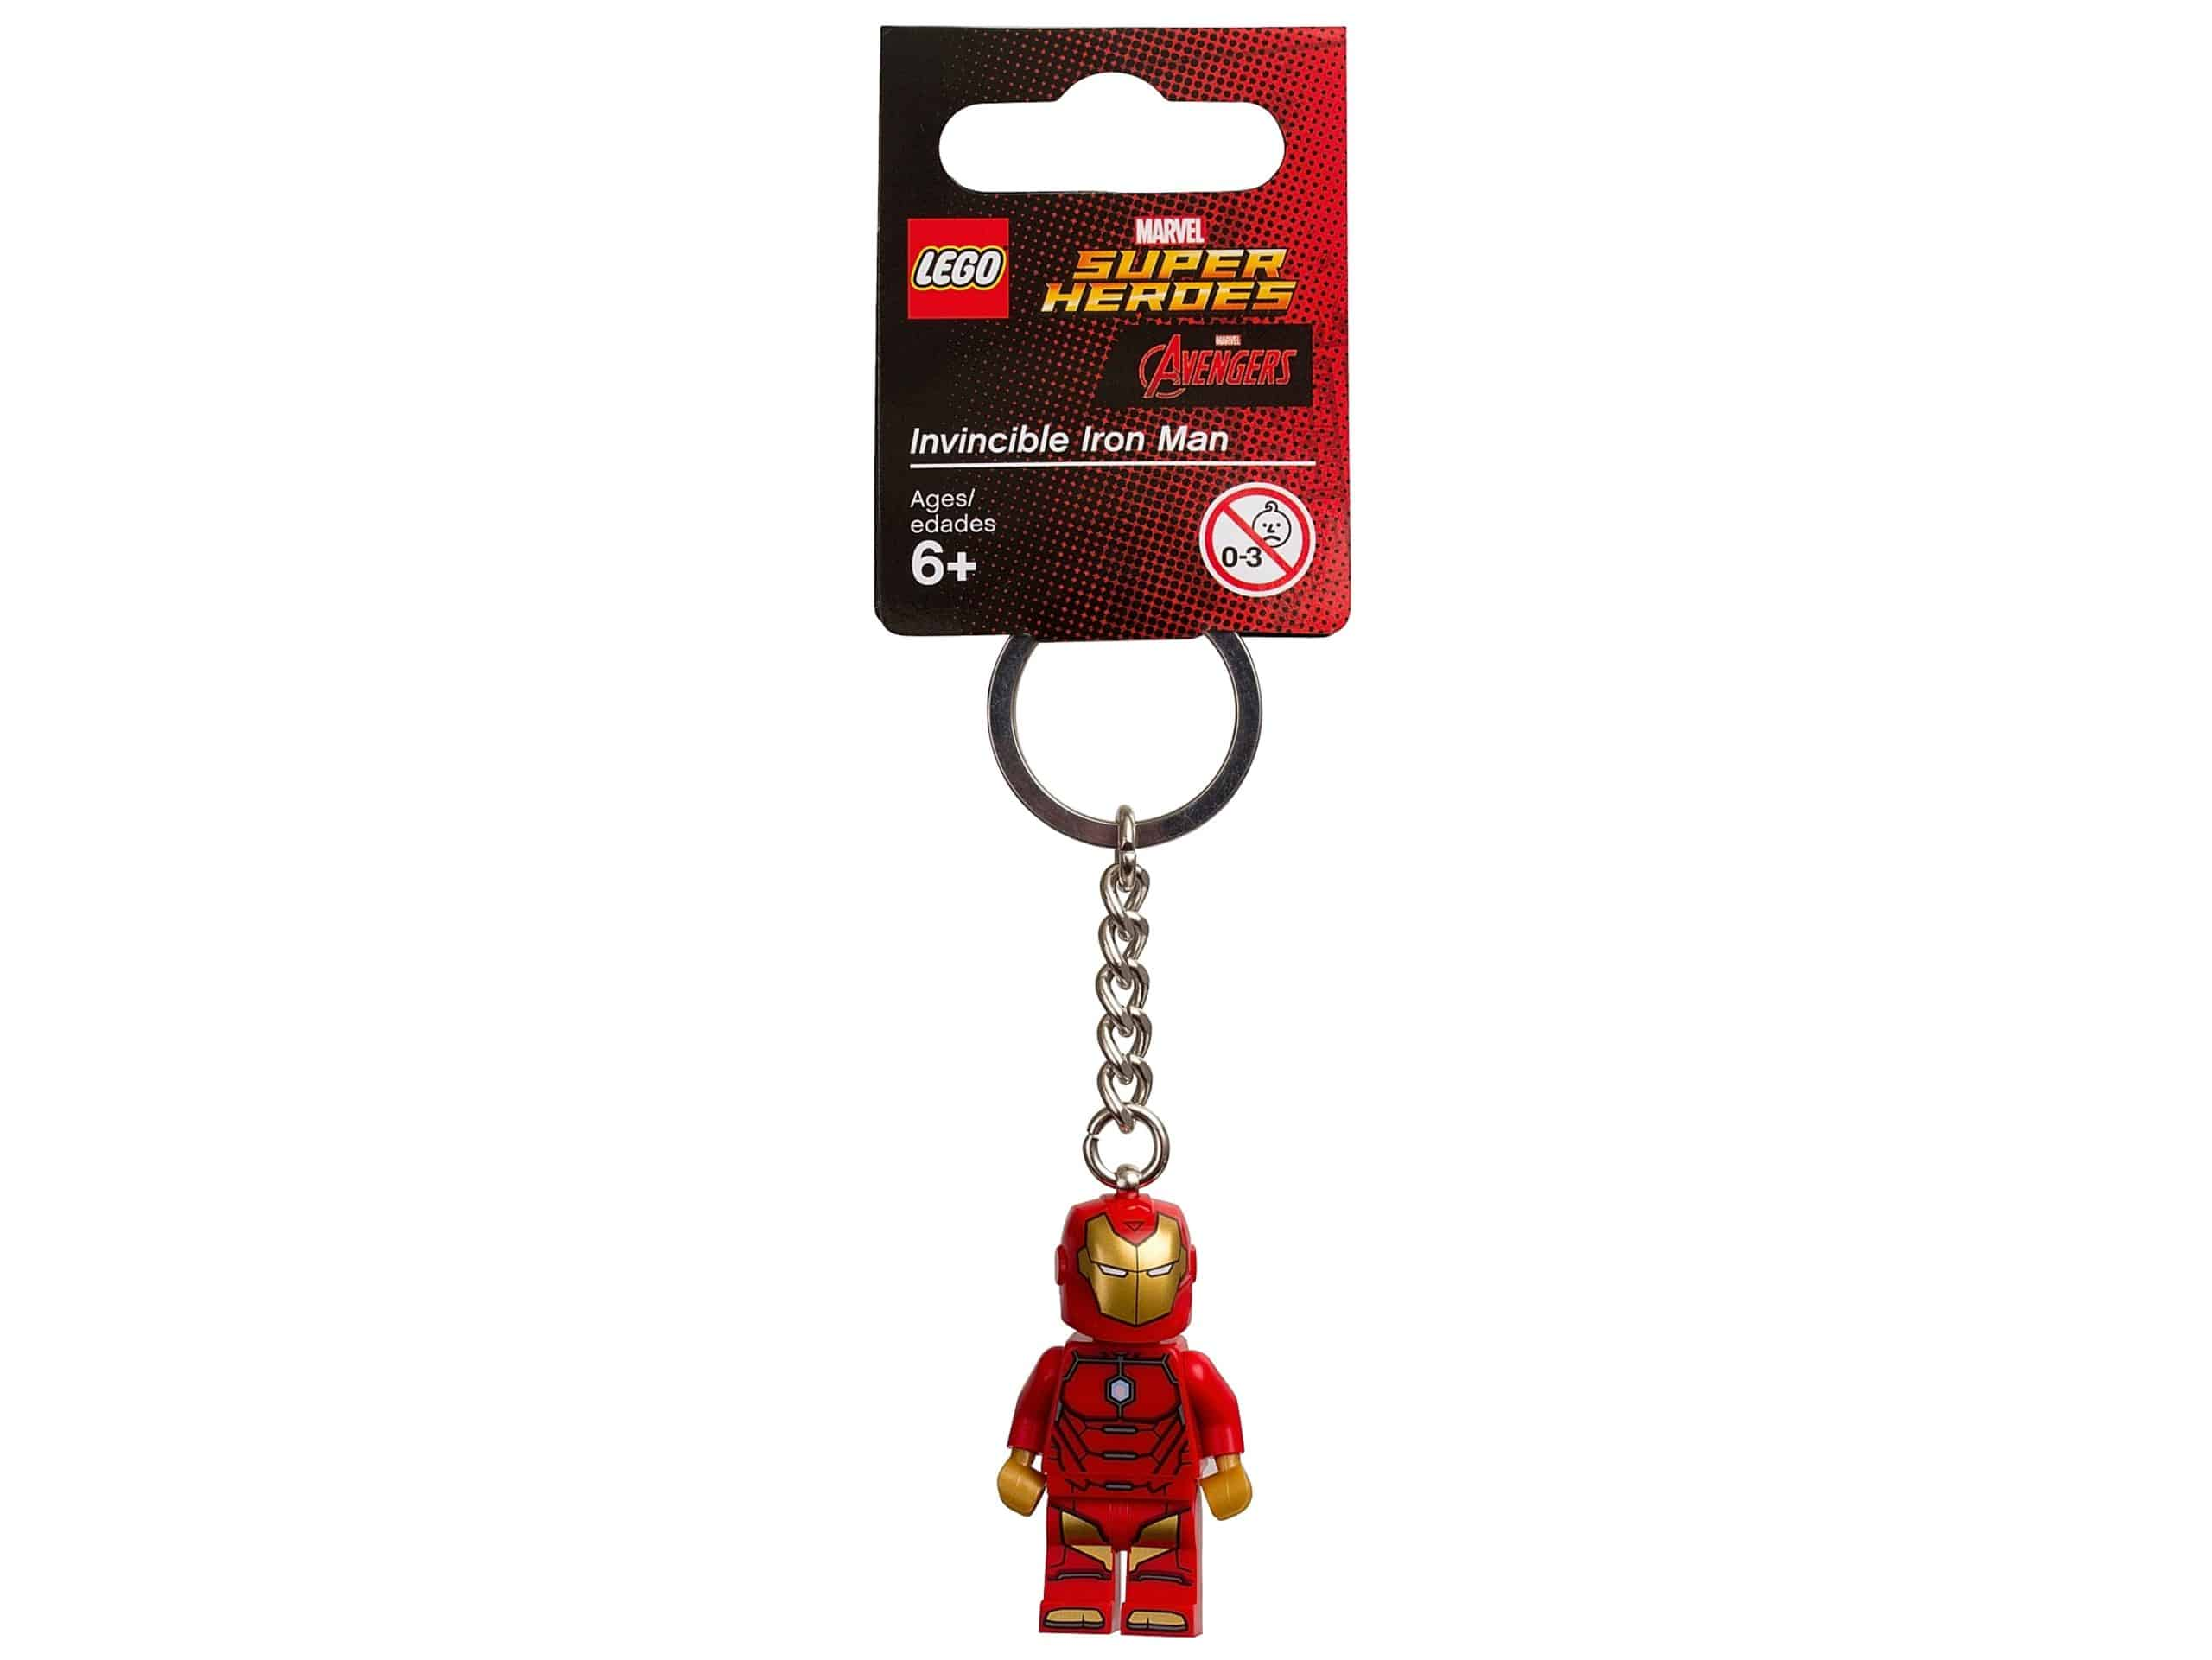 lego 853706 marvel super heroes invincible iron man schlusselanhanger scaled